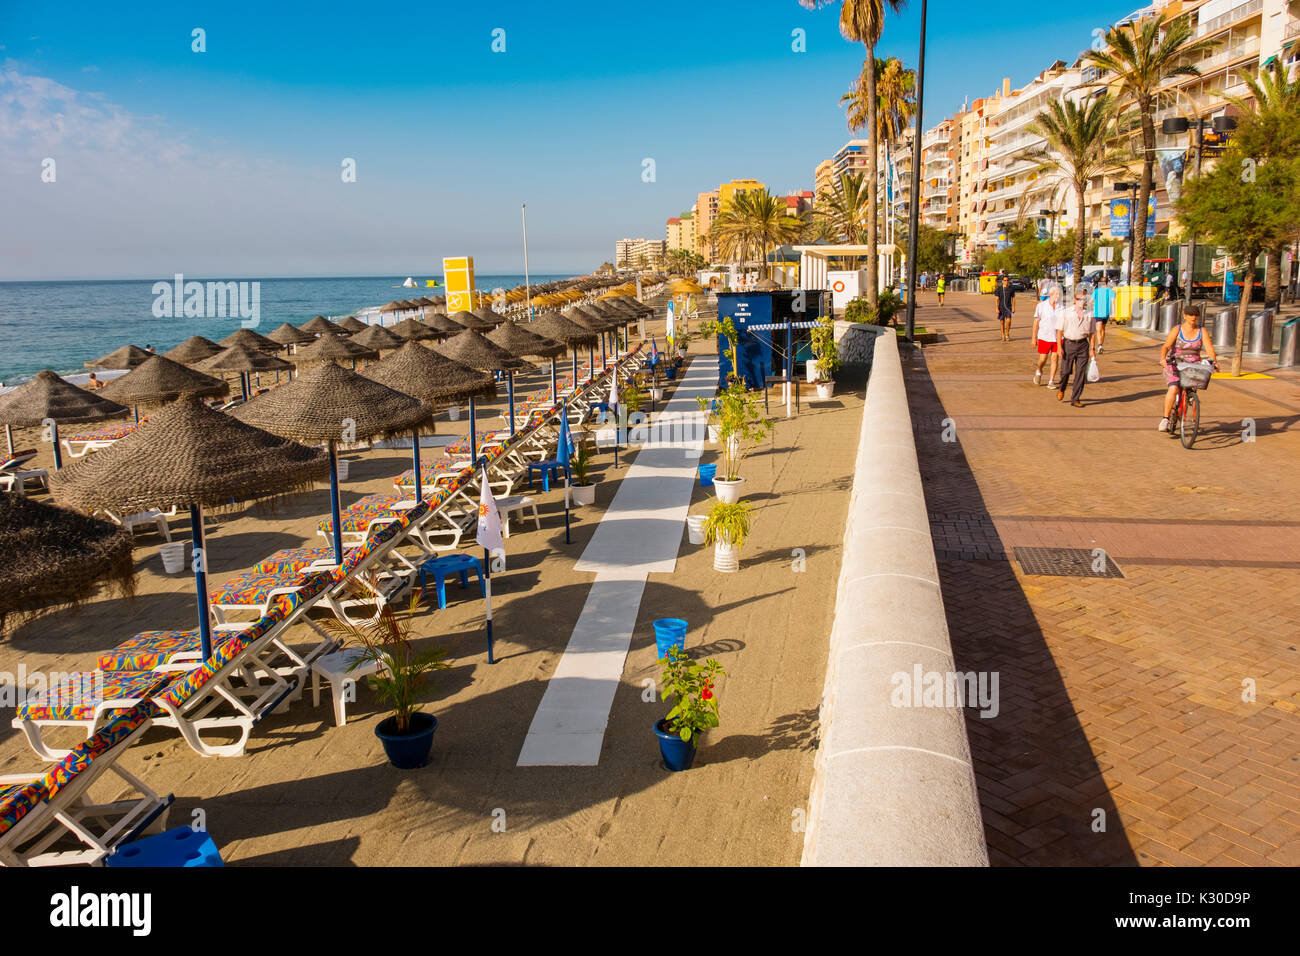 Straw umbrellas & Hammock, beach, Fuengirola. Malaga province Costa del Sol. Andalusia southern, Spain Europe - Stock Image